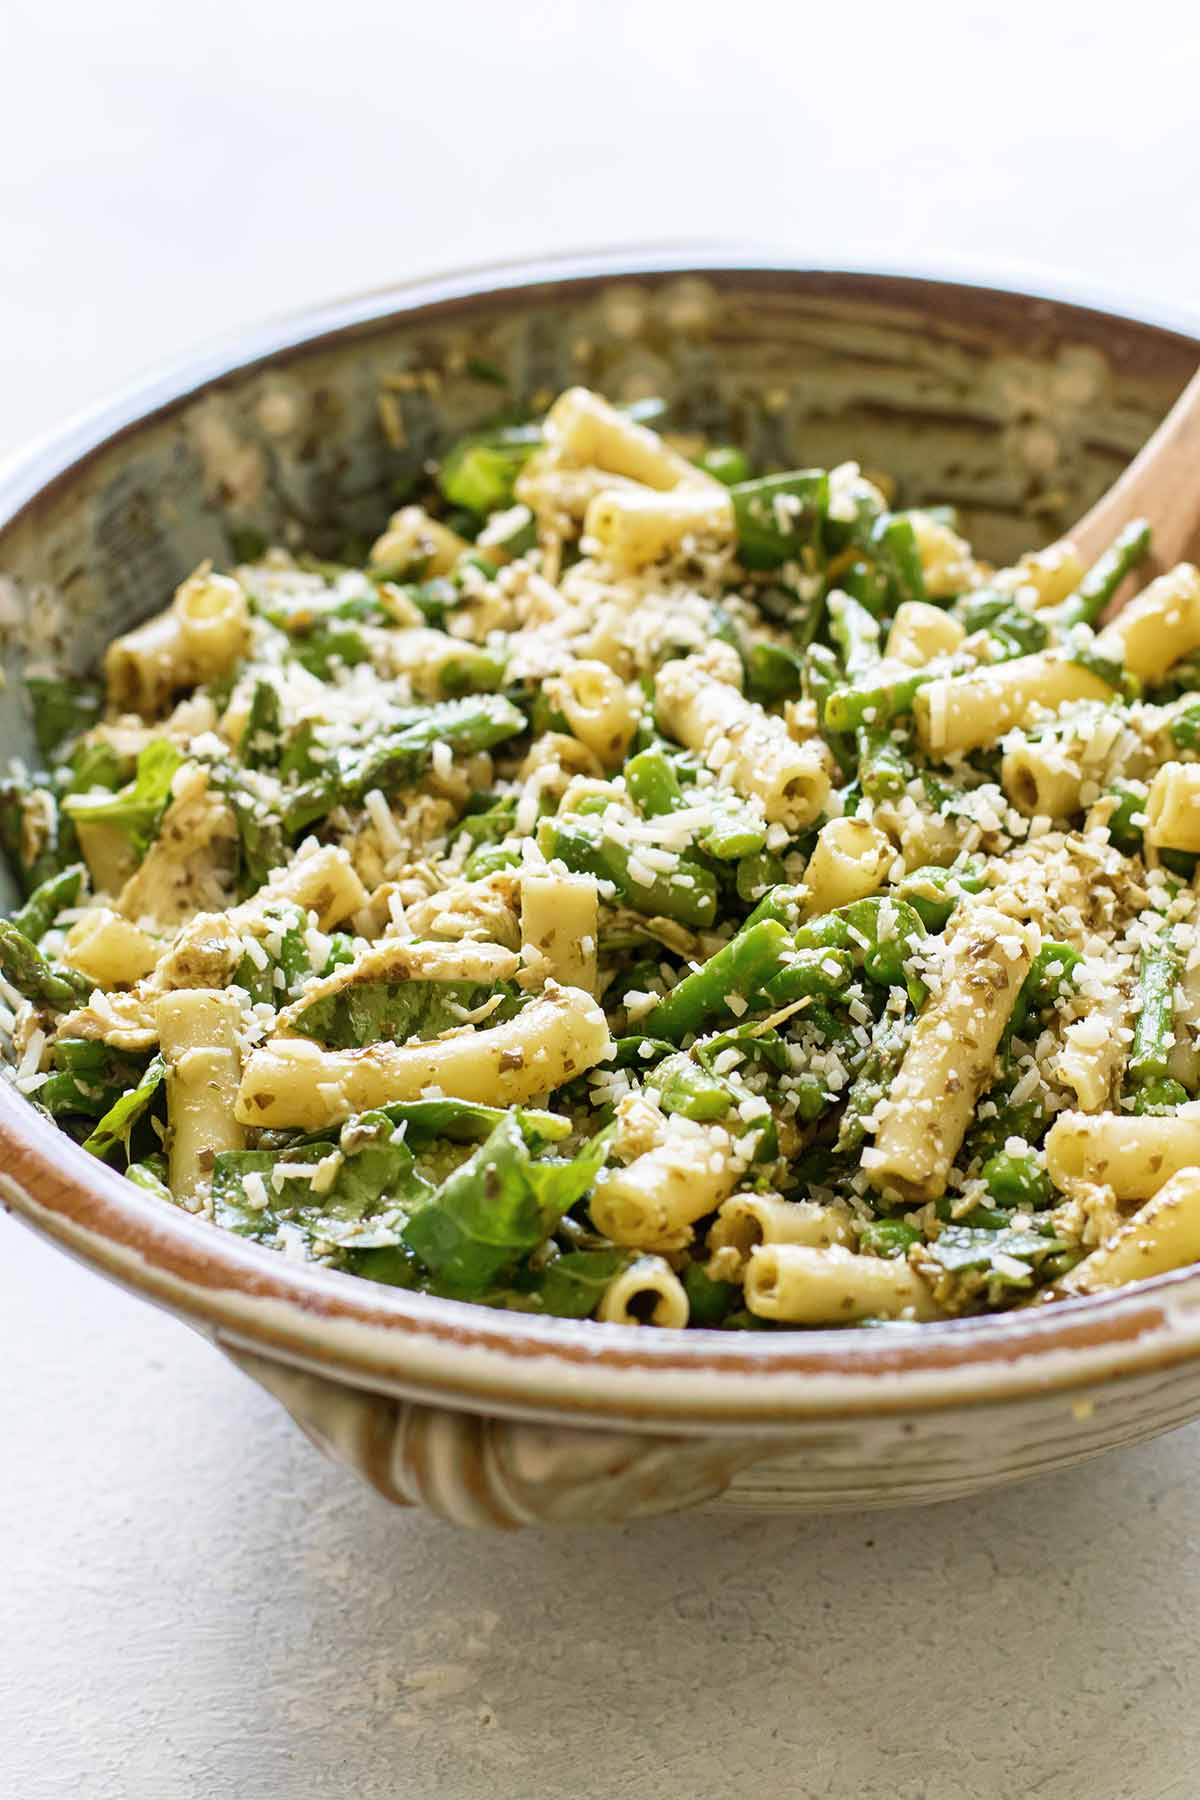 close-up photo of pesto pasta salad in a serving bowl